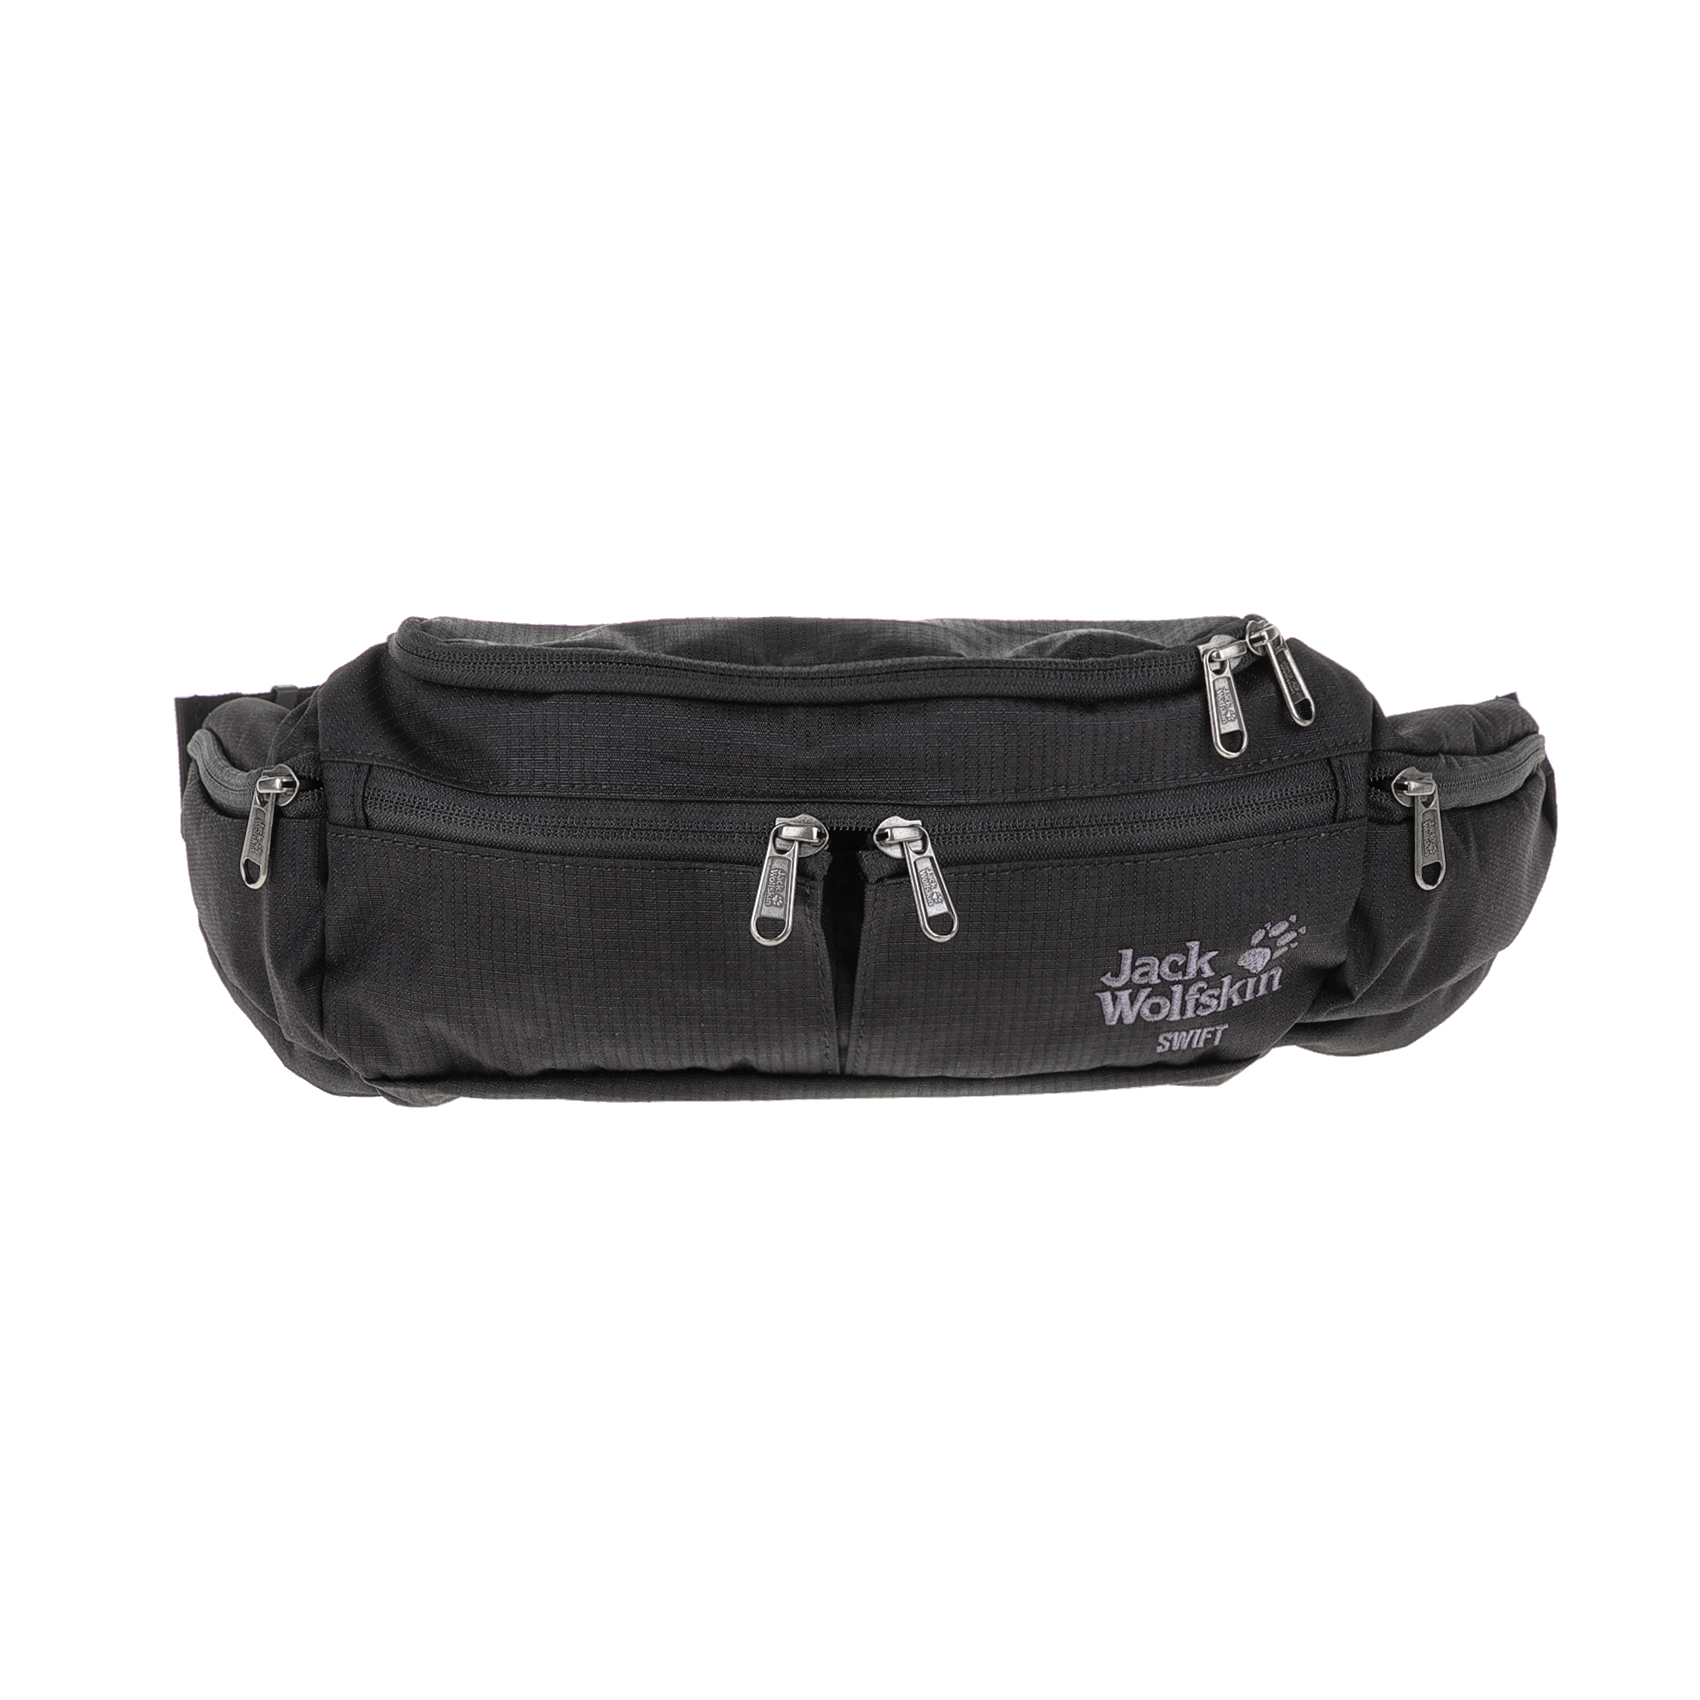 JACK WOLFSKIN – Τσαντάκι μέσης SWIFT FANNY PACK EQUIPMENT JACK WOLFSKIN μαύρο 1635940.0-0071